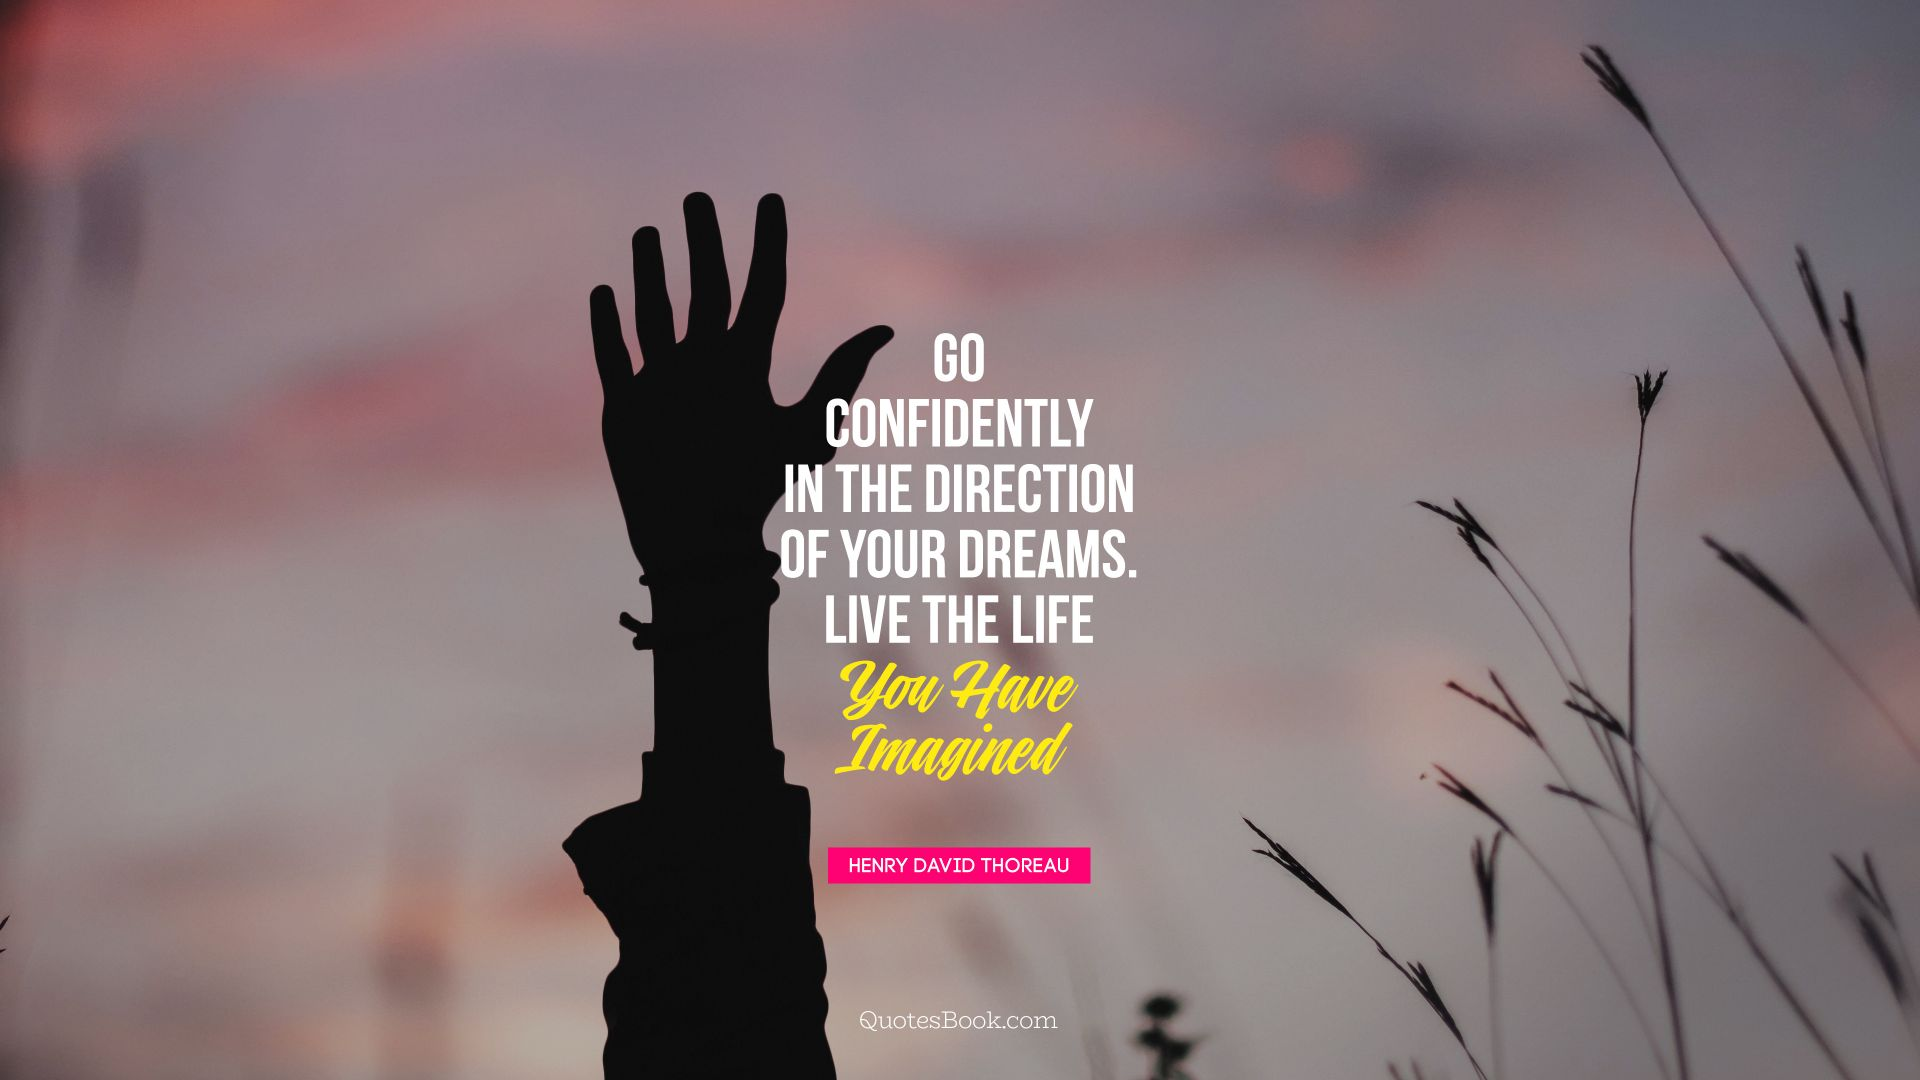 Go confidently in the direction of your dreams. Live the life  you have imagined. - Quote by Henry David Thoreau